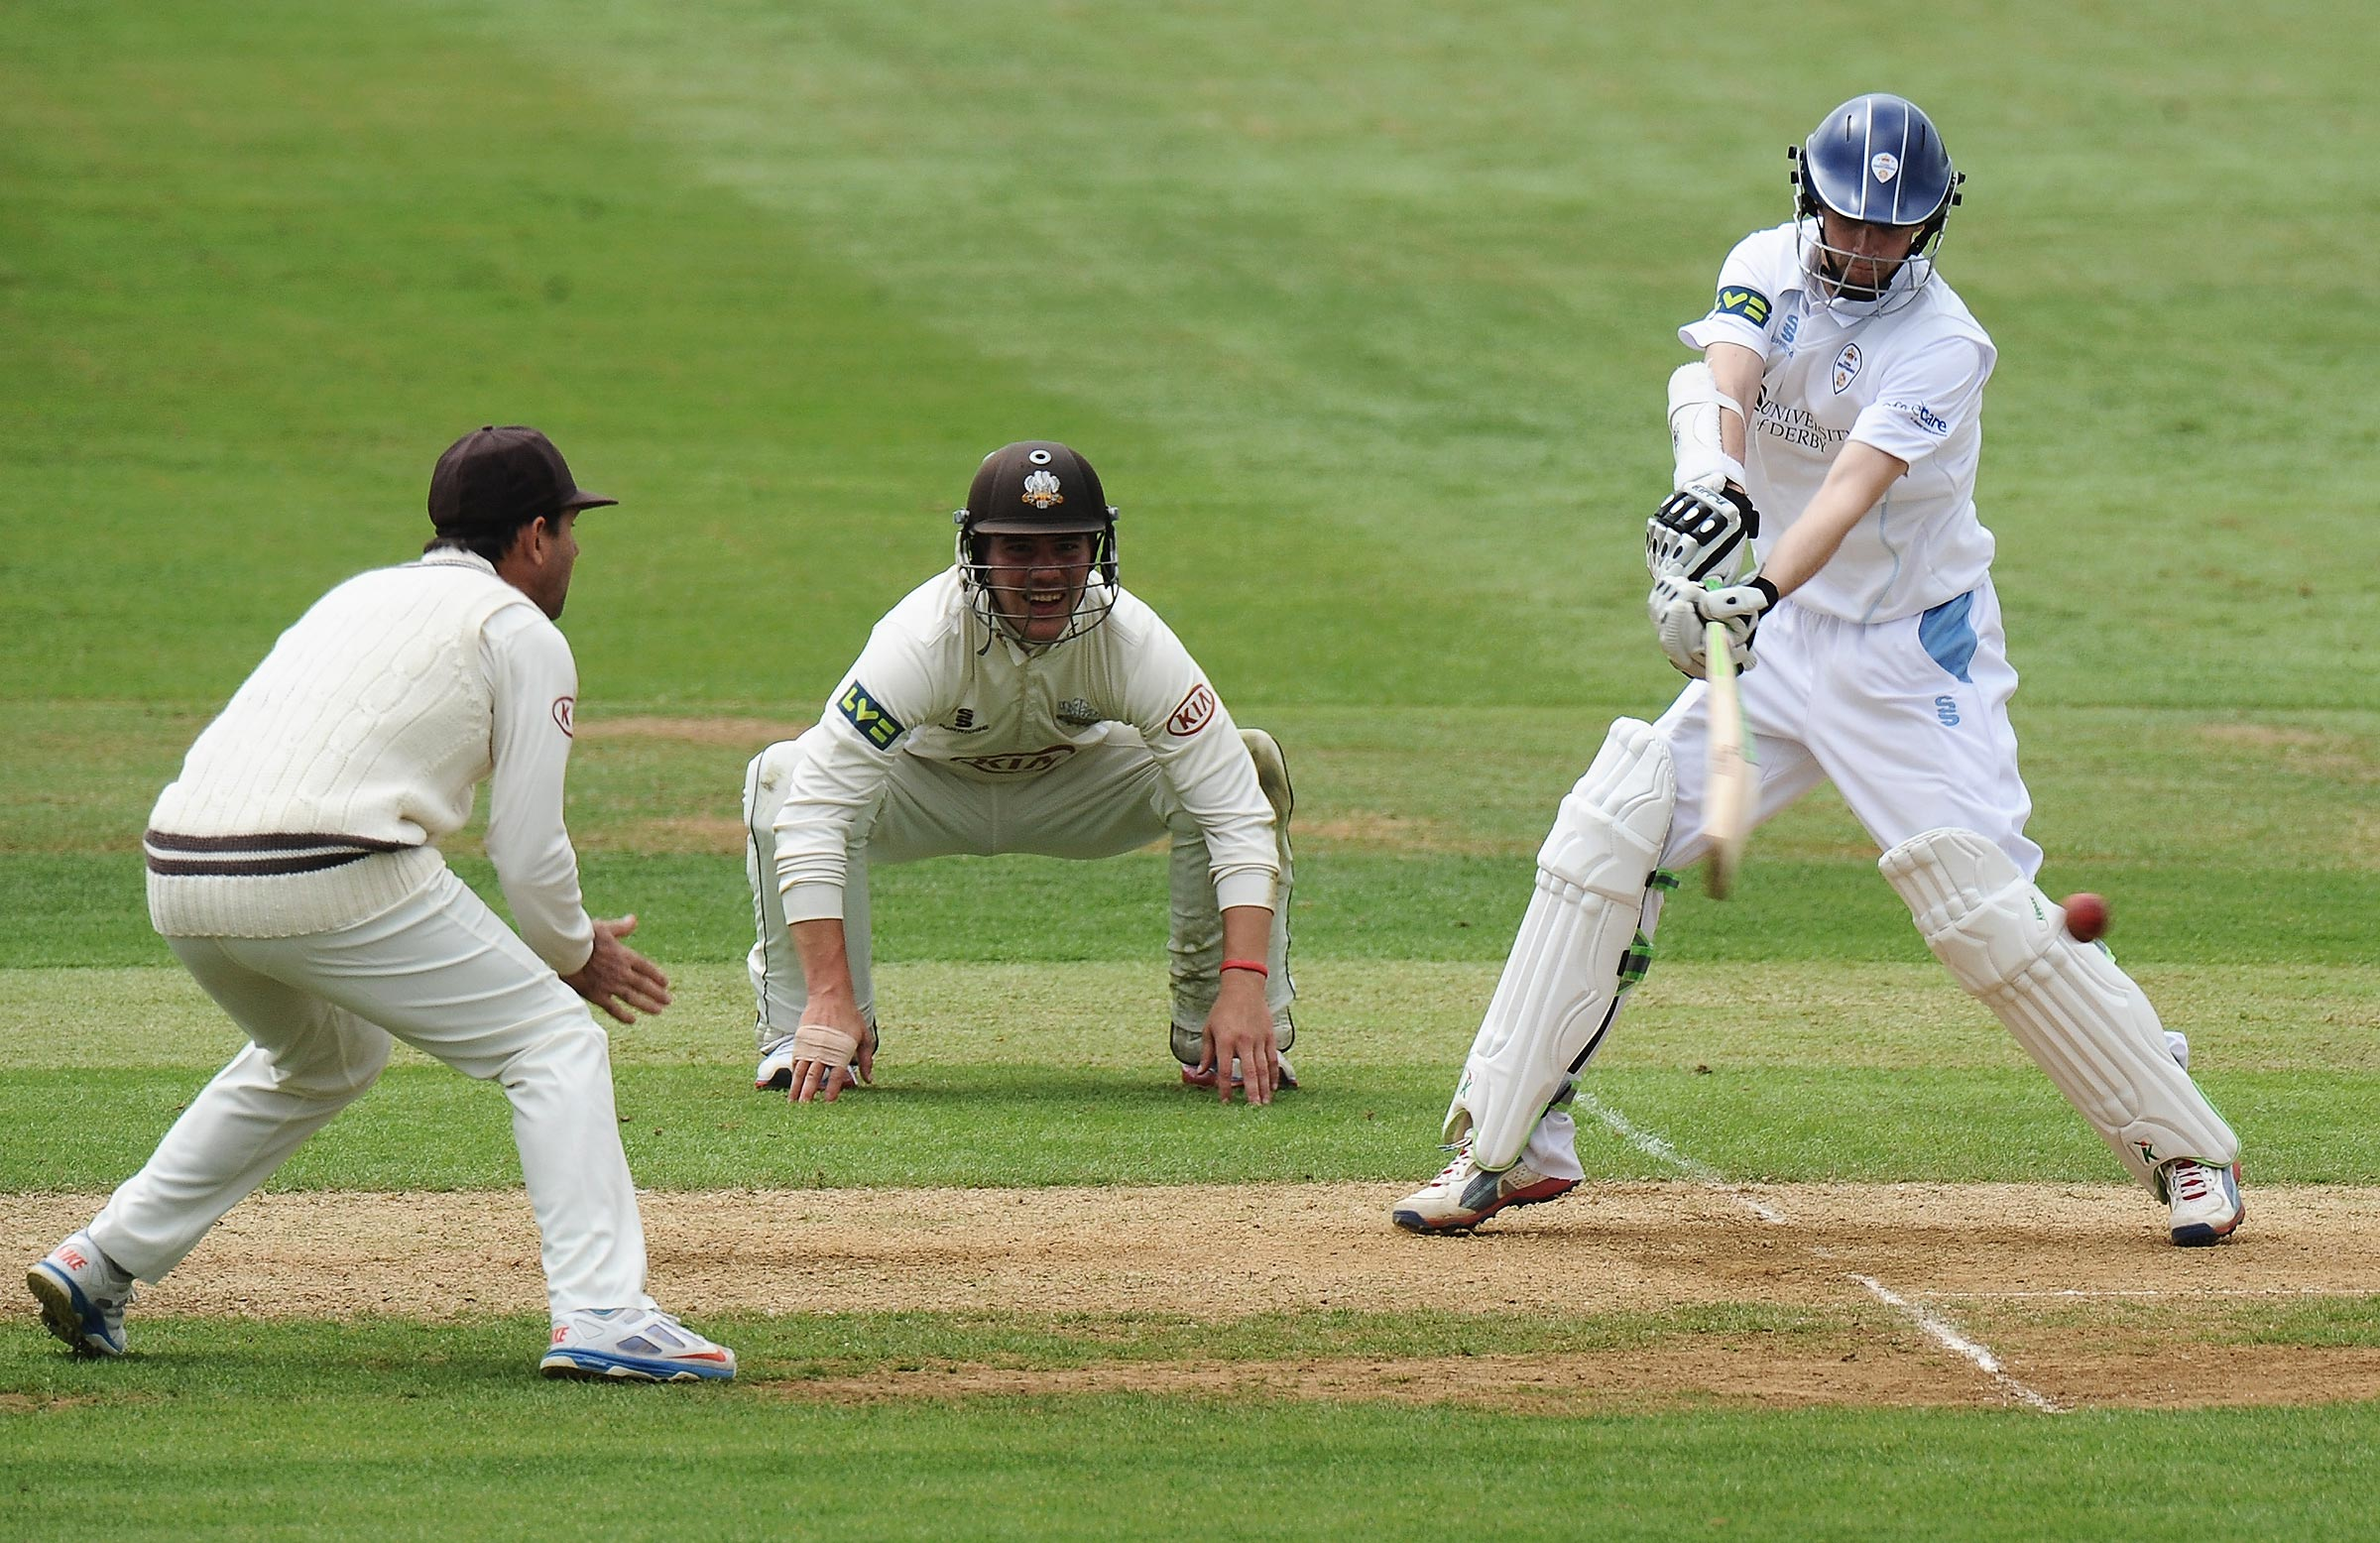 Ponting (left) and Burns (centre) during a game for Surrey in 2013 // Getty